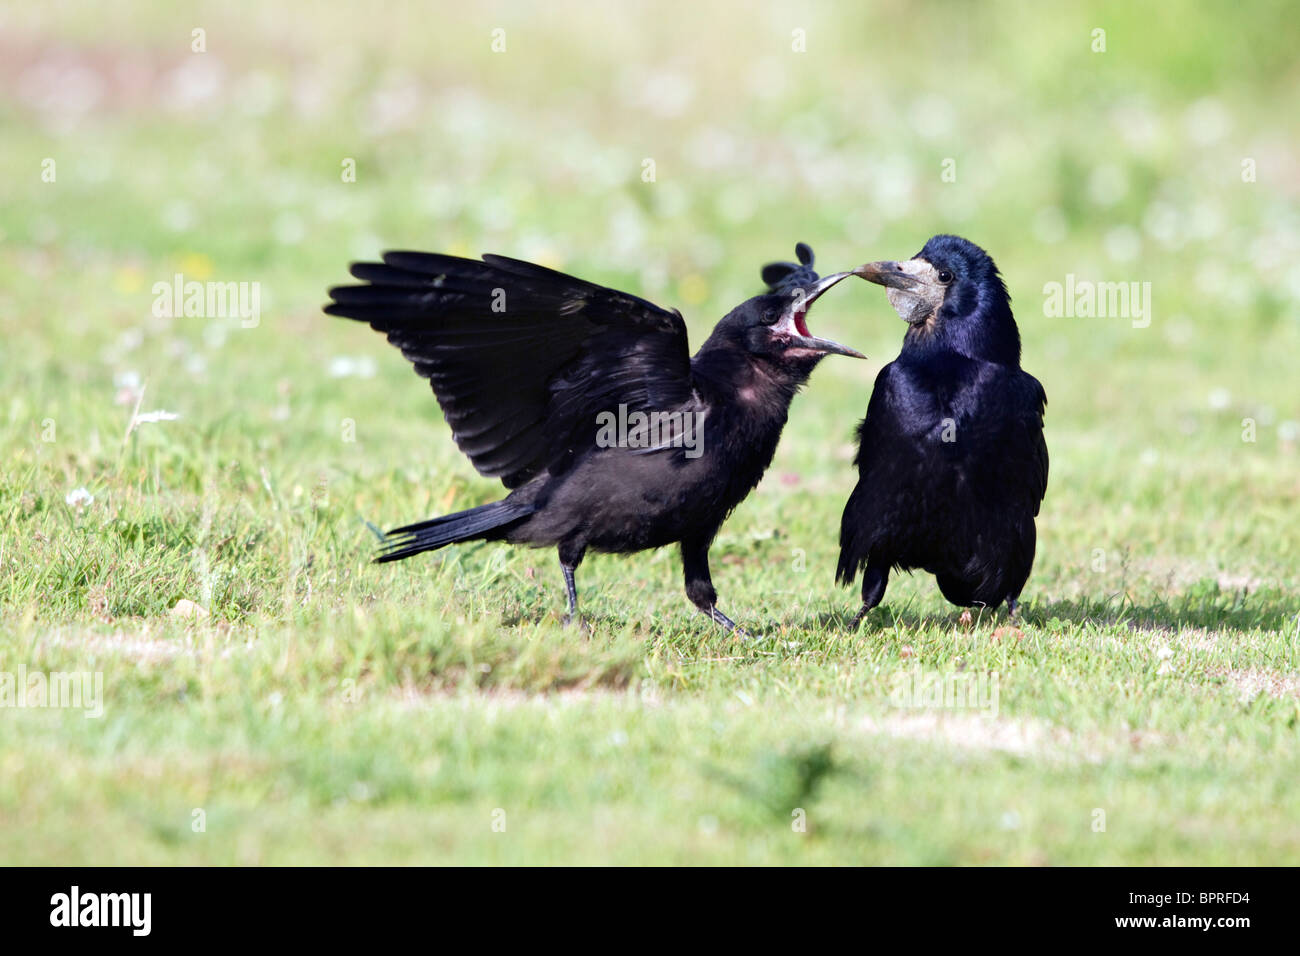 Rook; Corvus frugilegus; young rook pestering adult for food - Stock Image